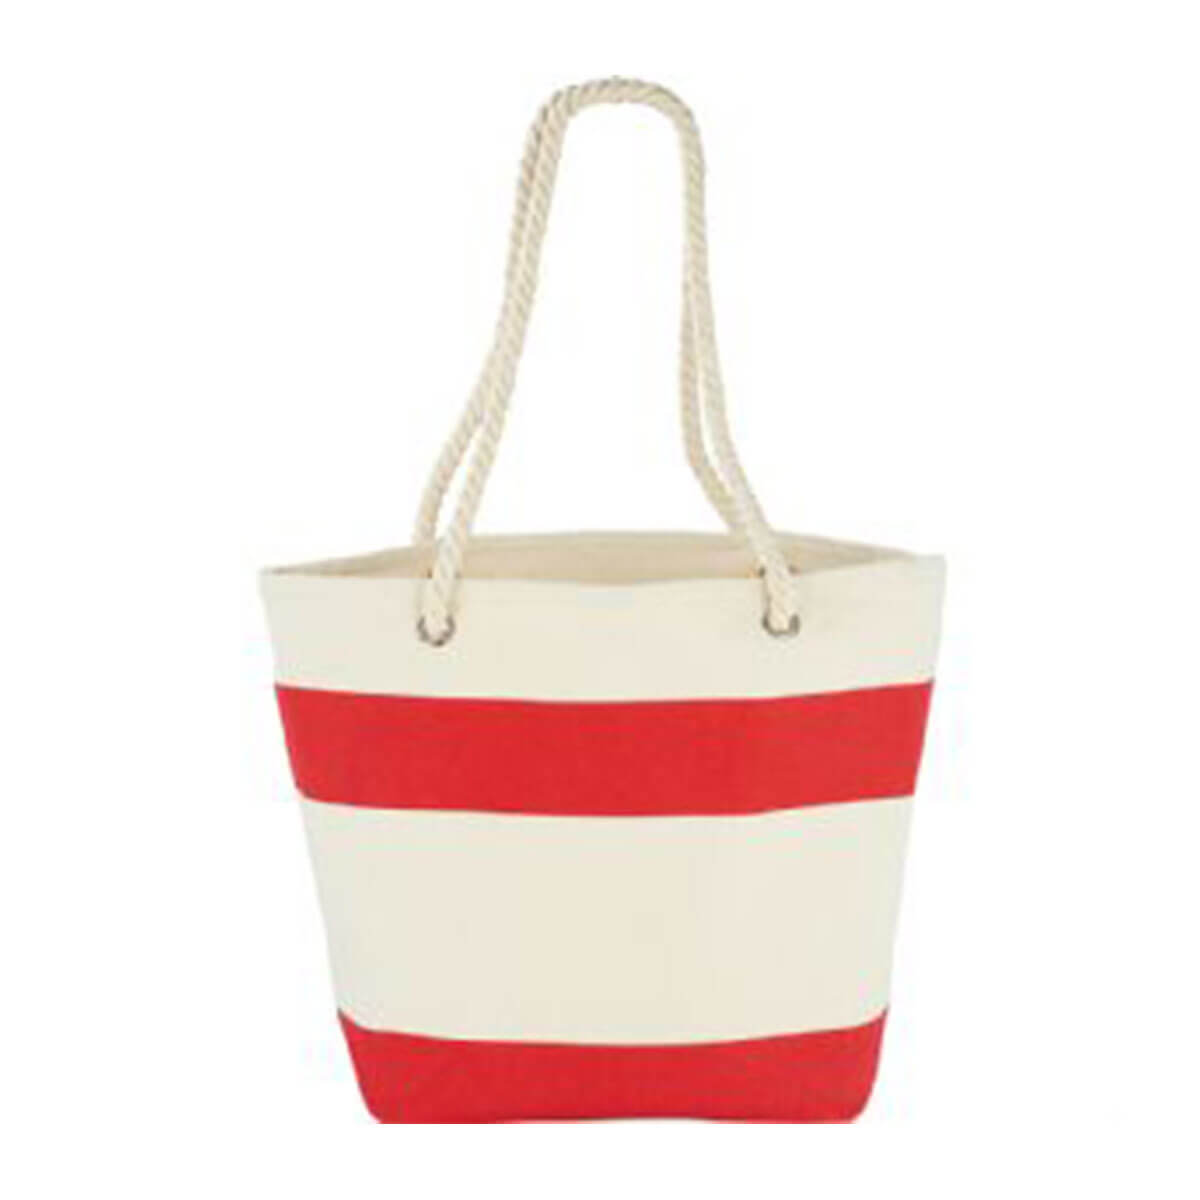 Capri Stripes Cotton Tote-Natural and Red